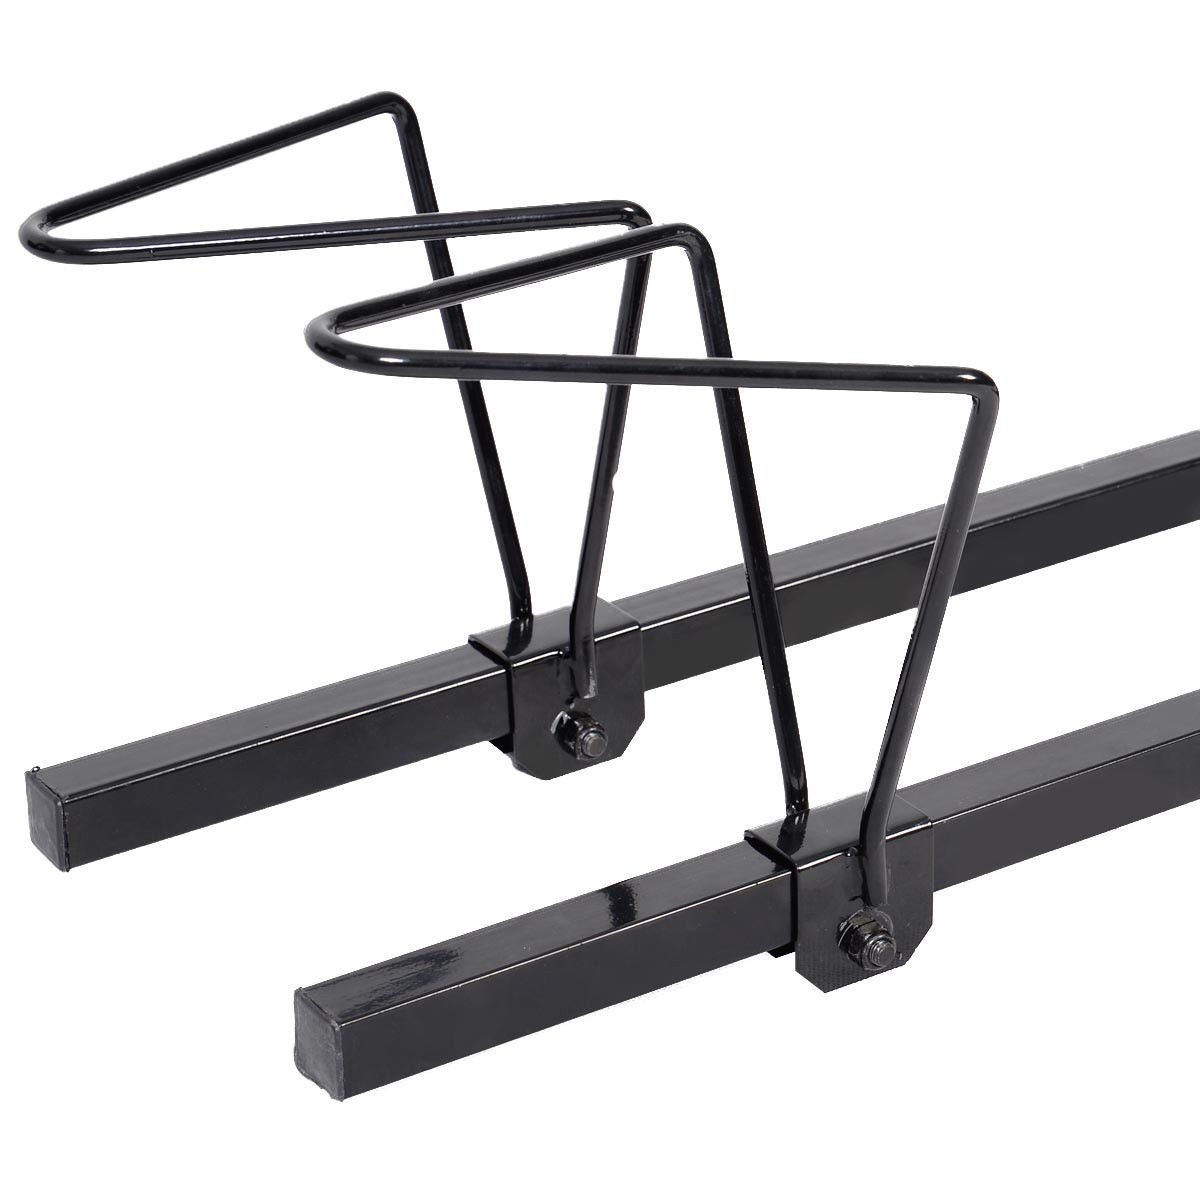 "2 Bike Bicycle Hitch Mount 2"" Heavy Duty Carrier Platform"